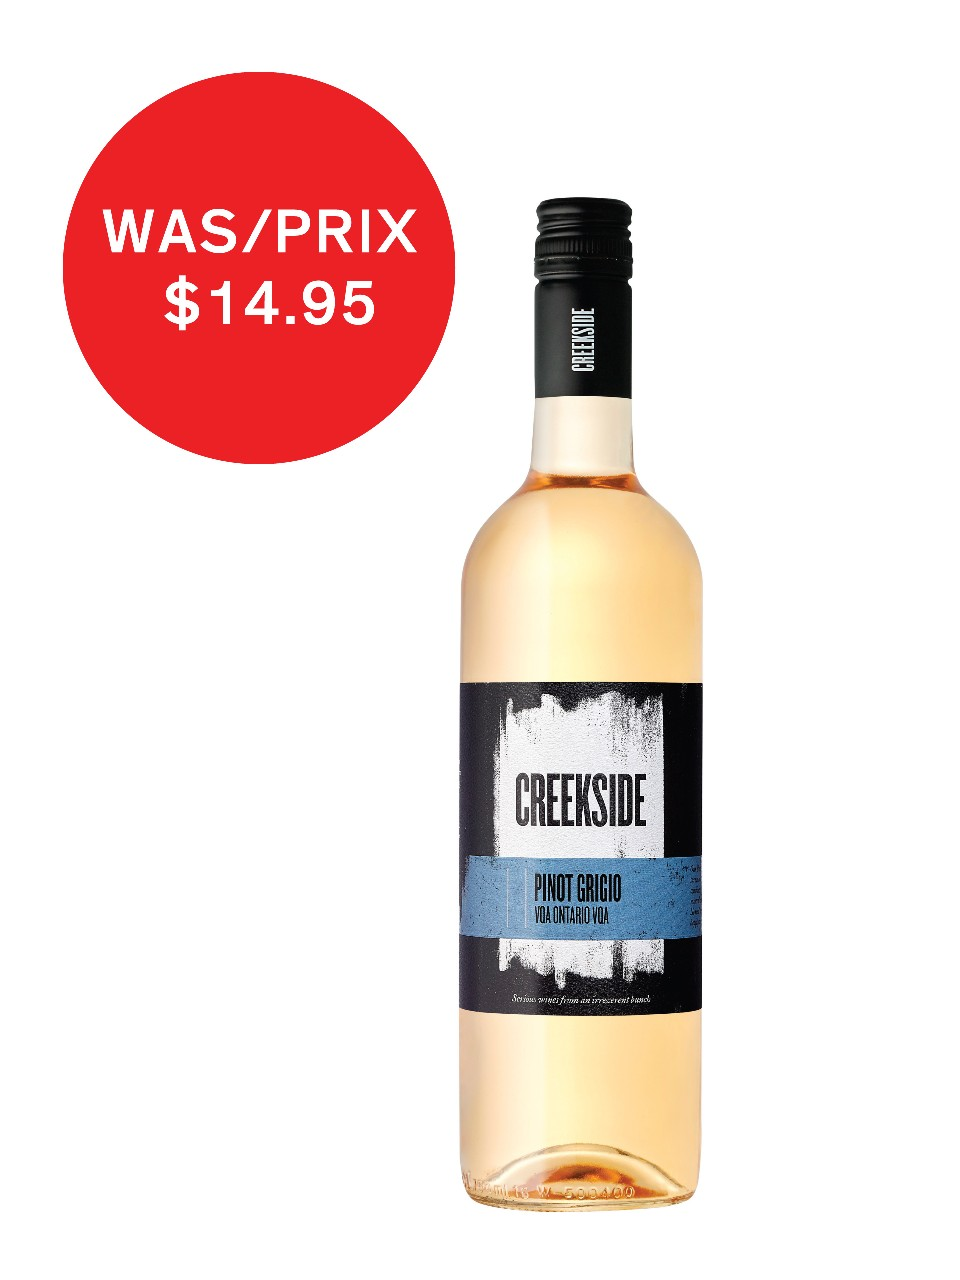 Creekside Pinot Grigio VQA from LCBO